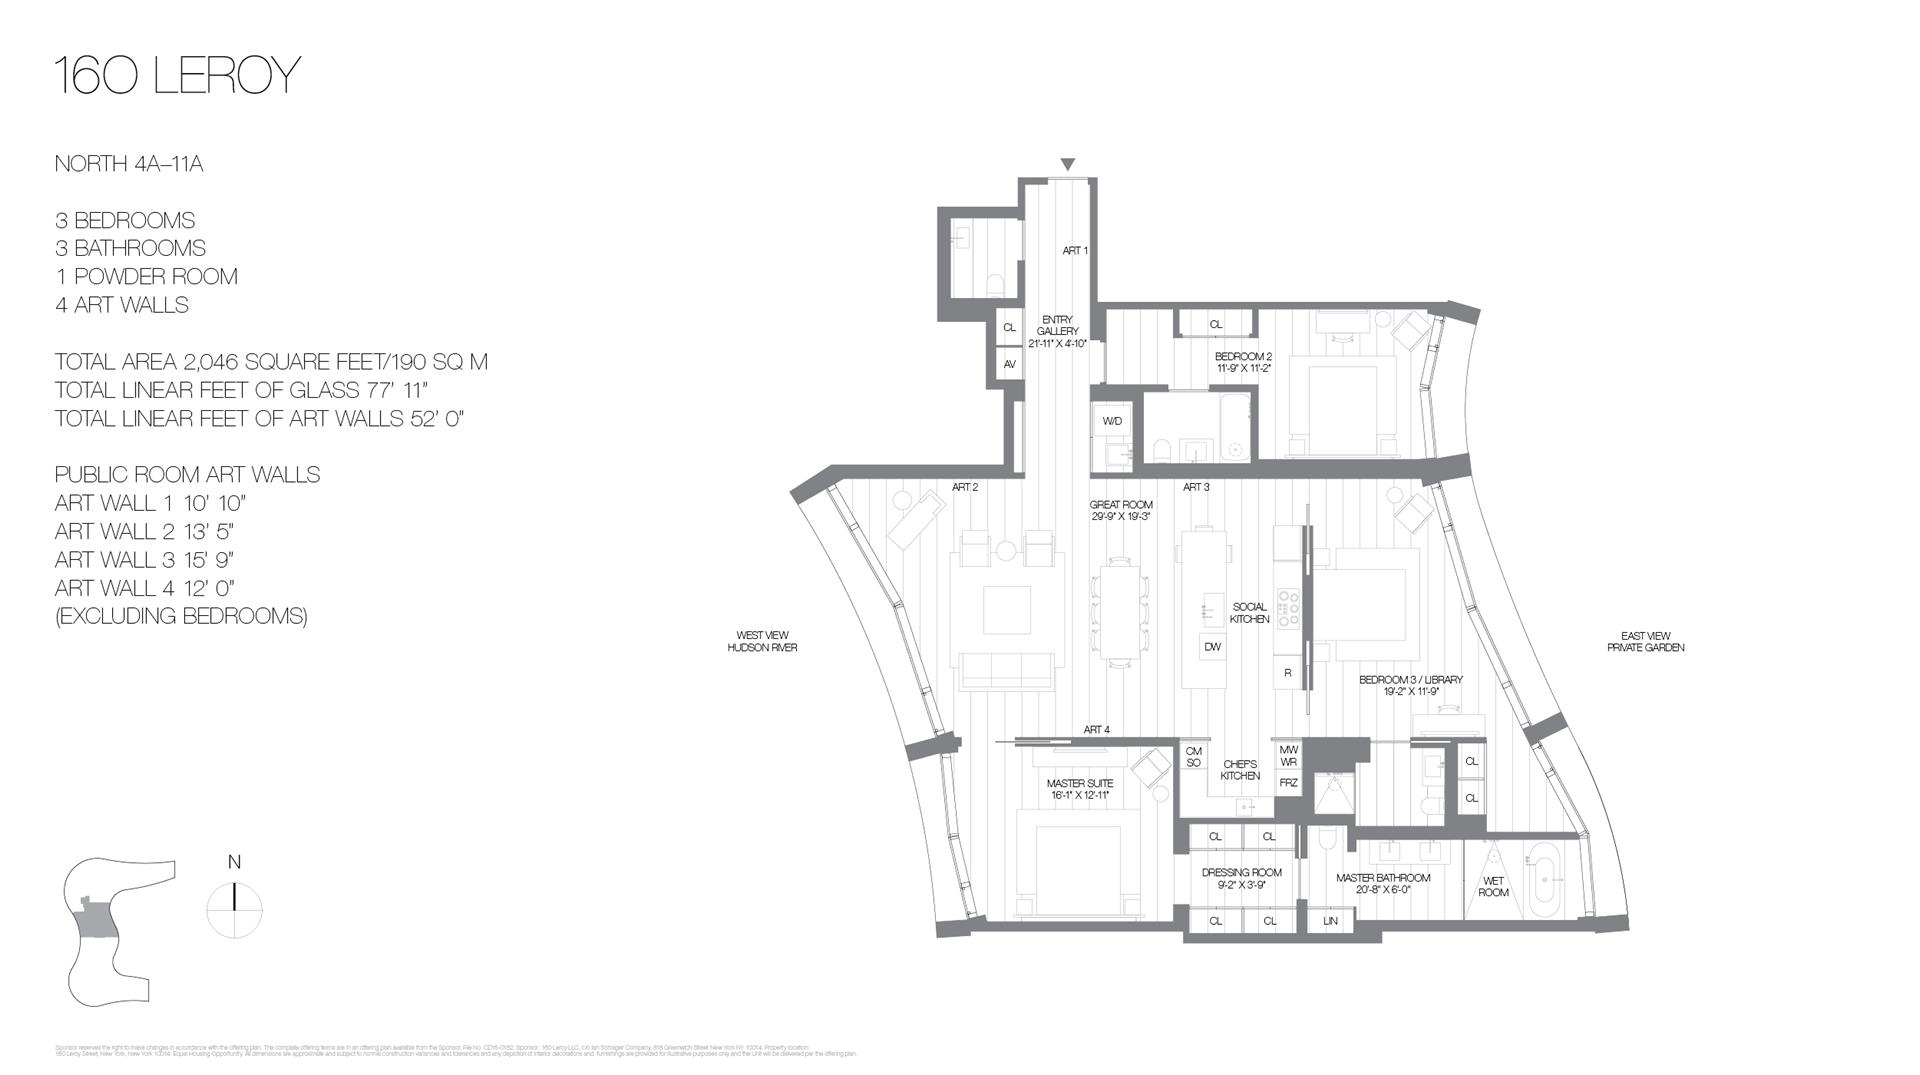 Floor plan of 160 Leroy St, NORTH9A - West Village - Meatpacking District, New York